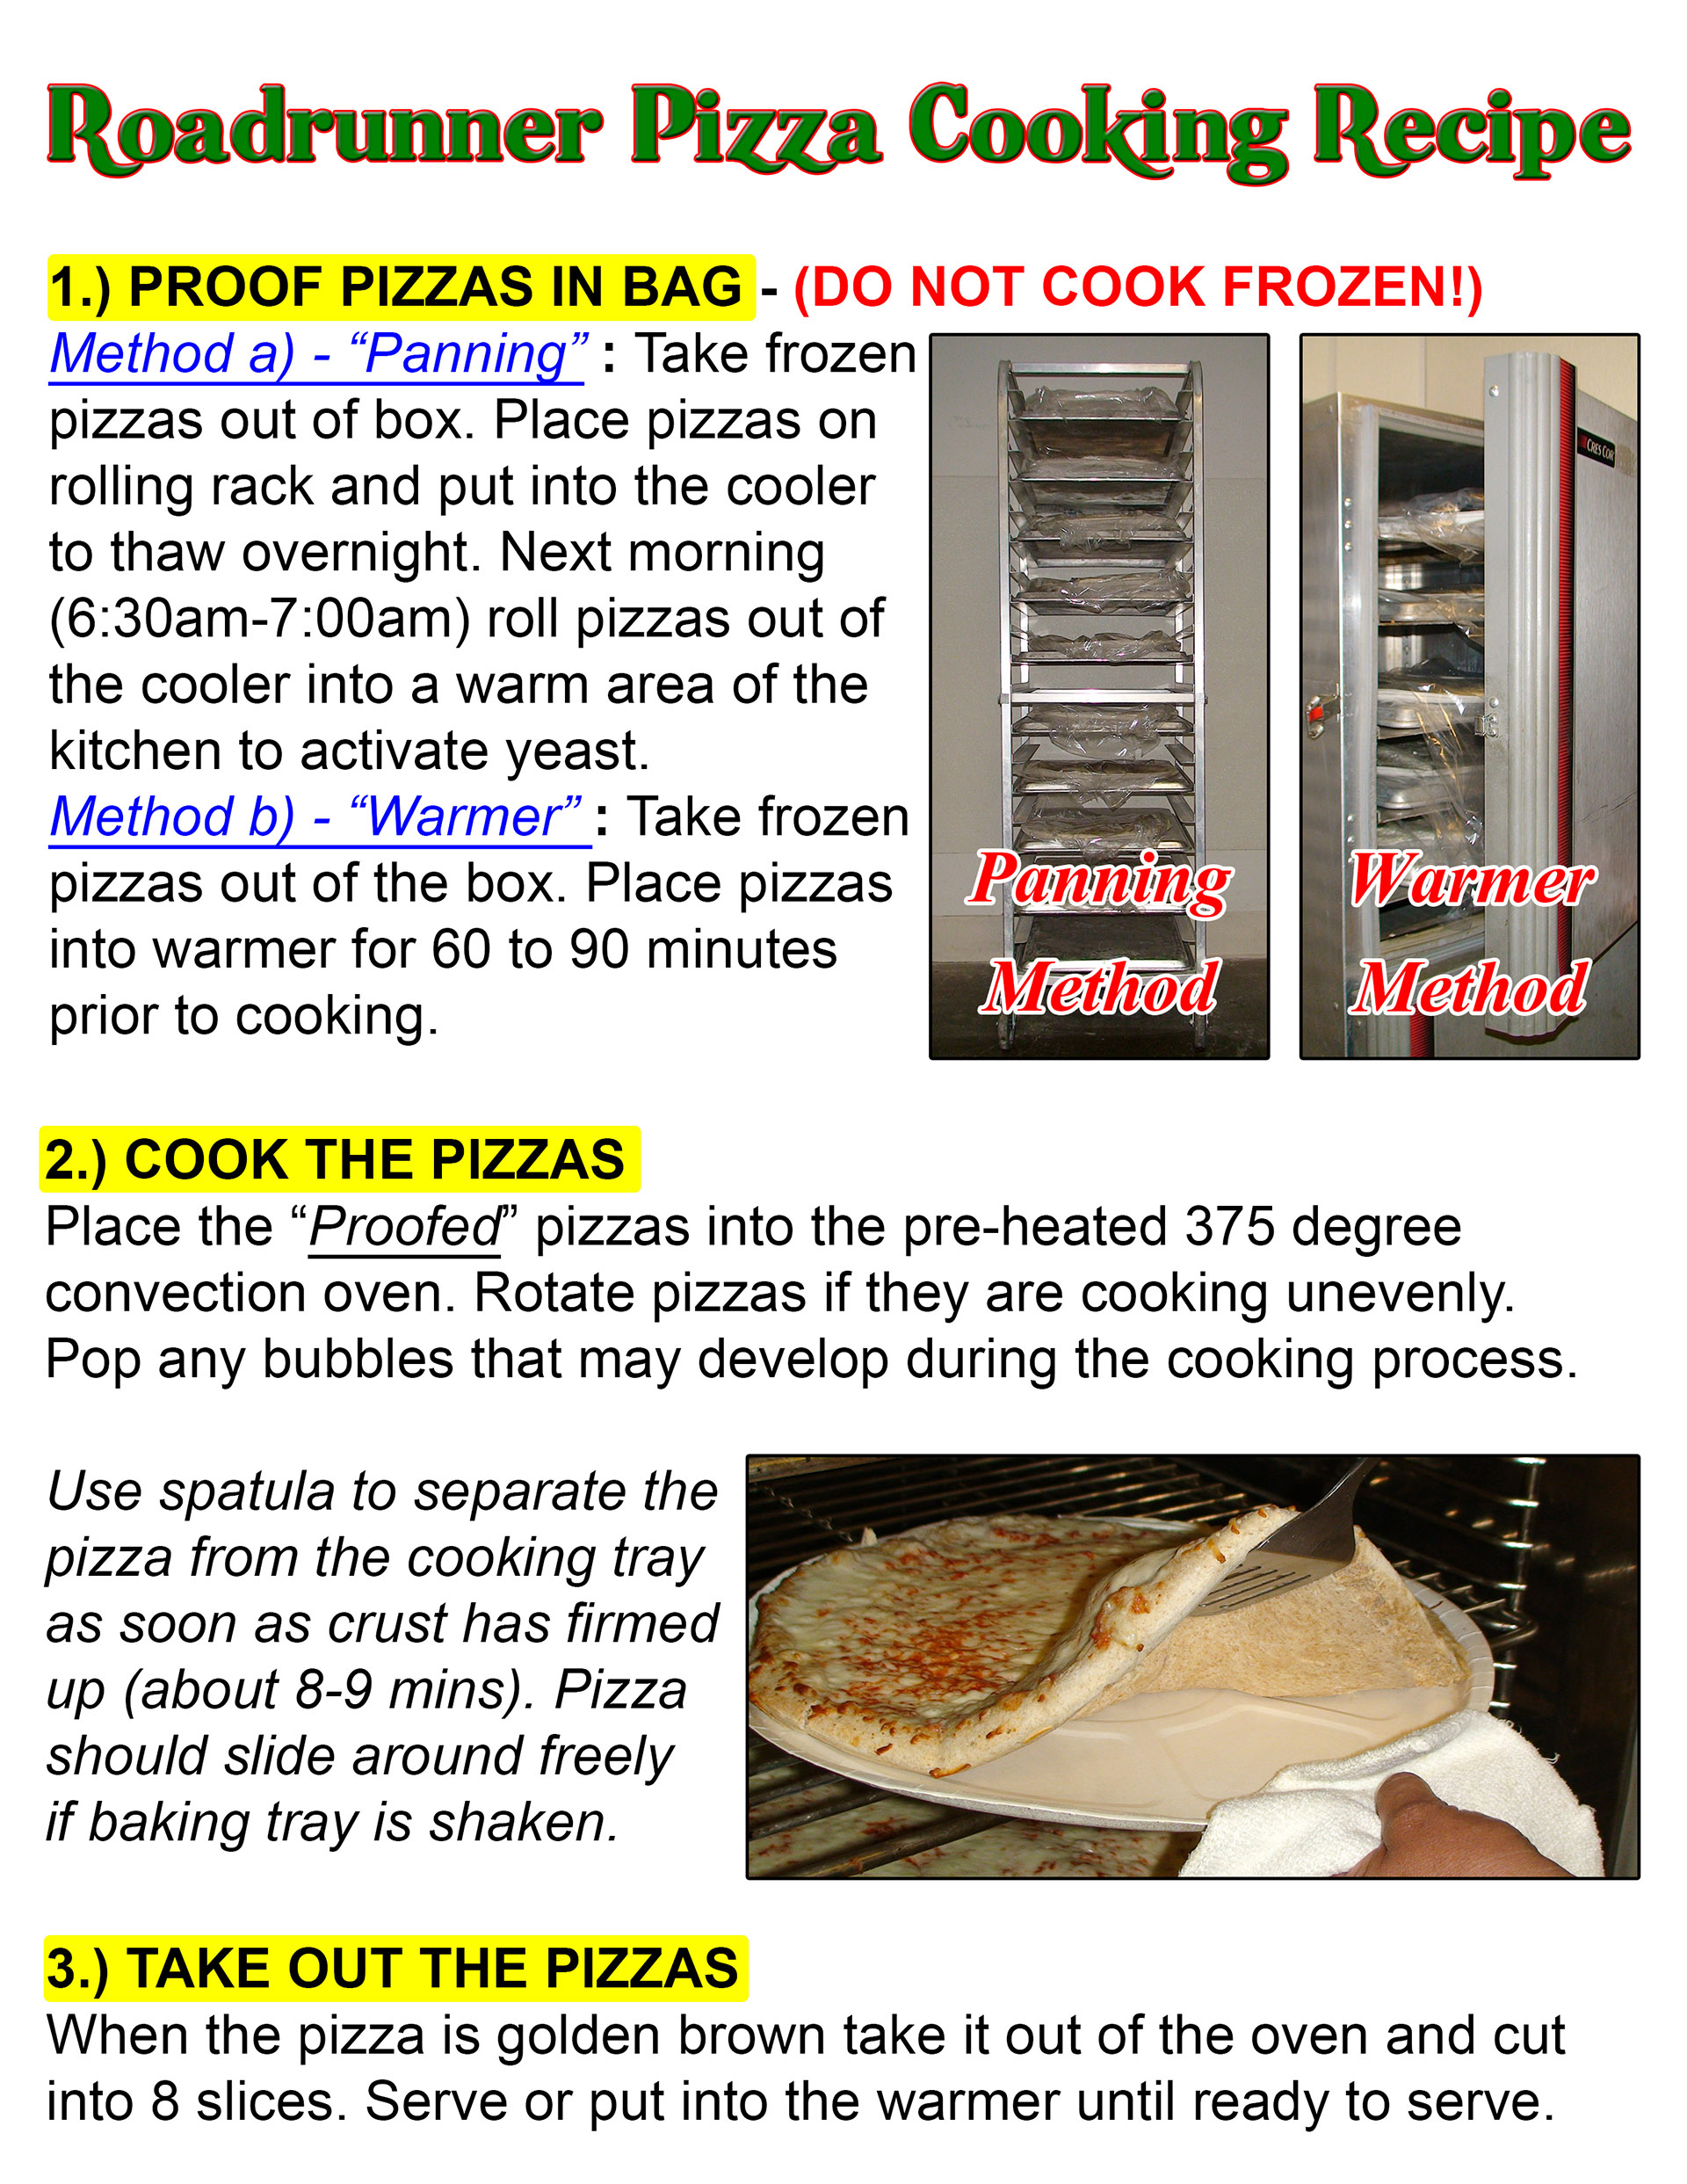 Roadrunner Pizza Cooking Recipe